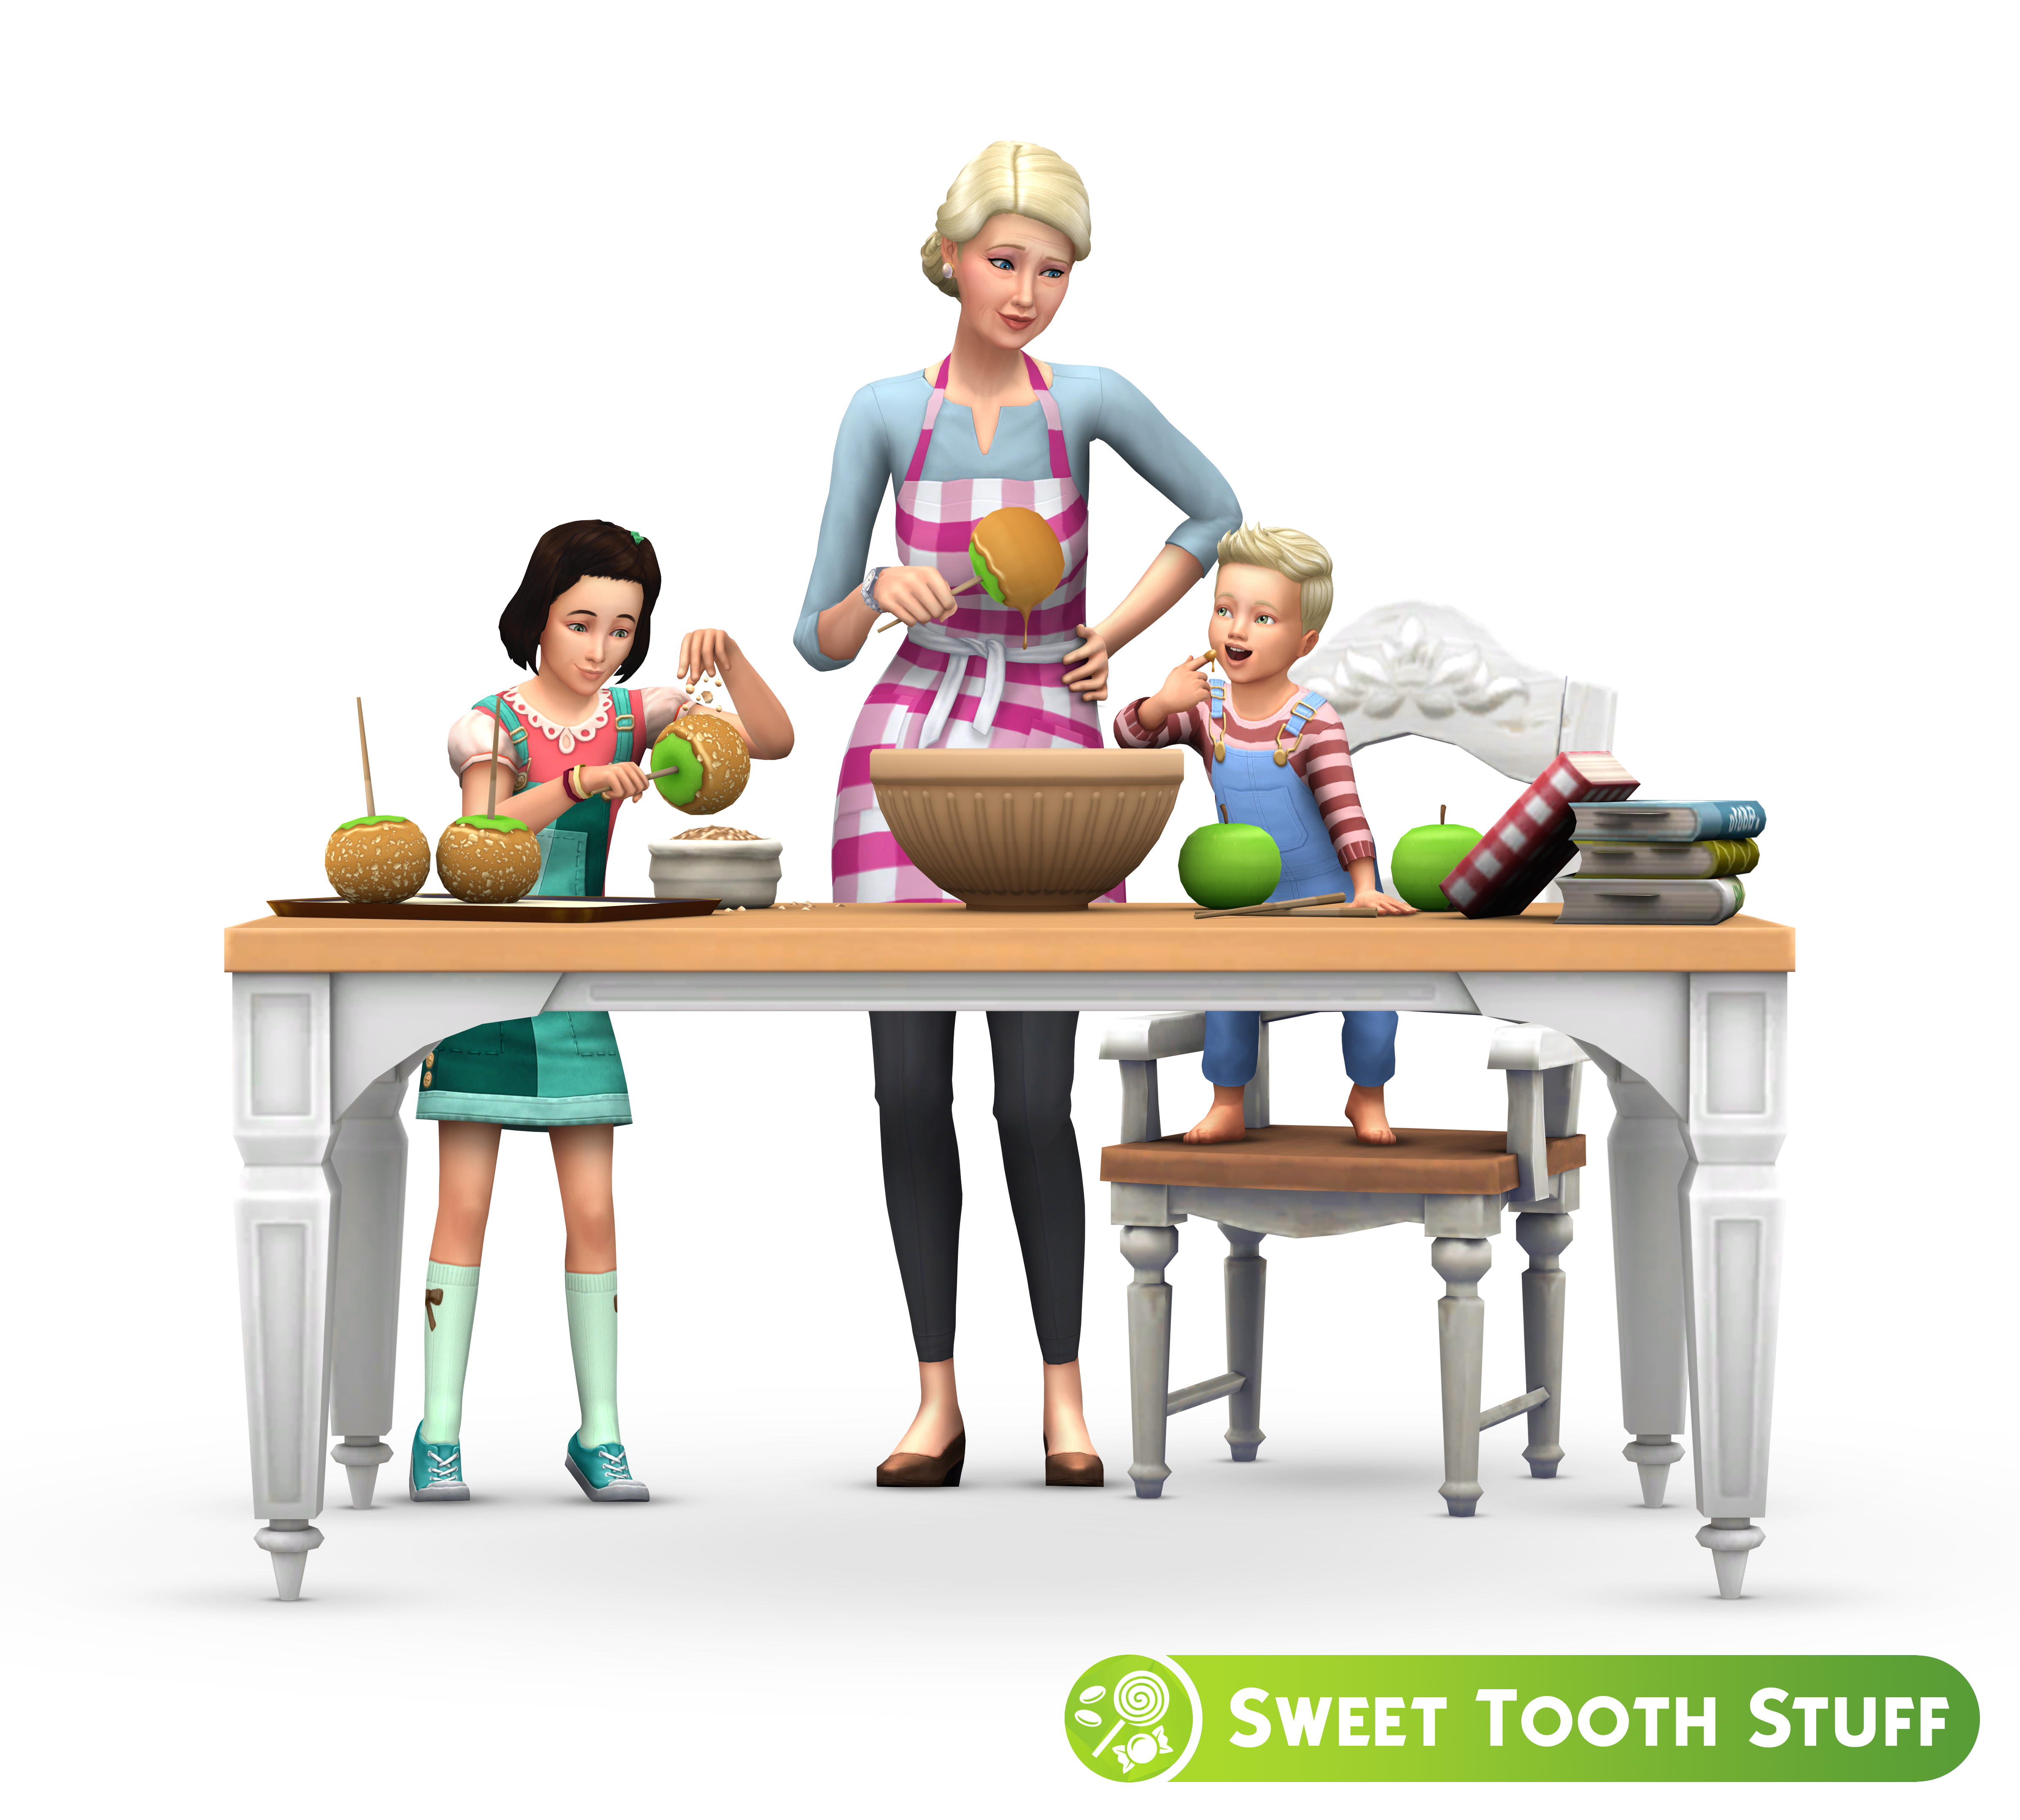 ts4_sweet_tooth_stuff_pack___render_3_fan_art__by_hazzaplumbob-dbnugig.png